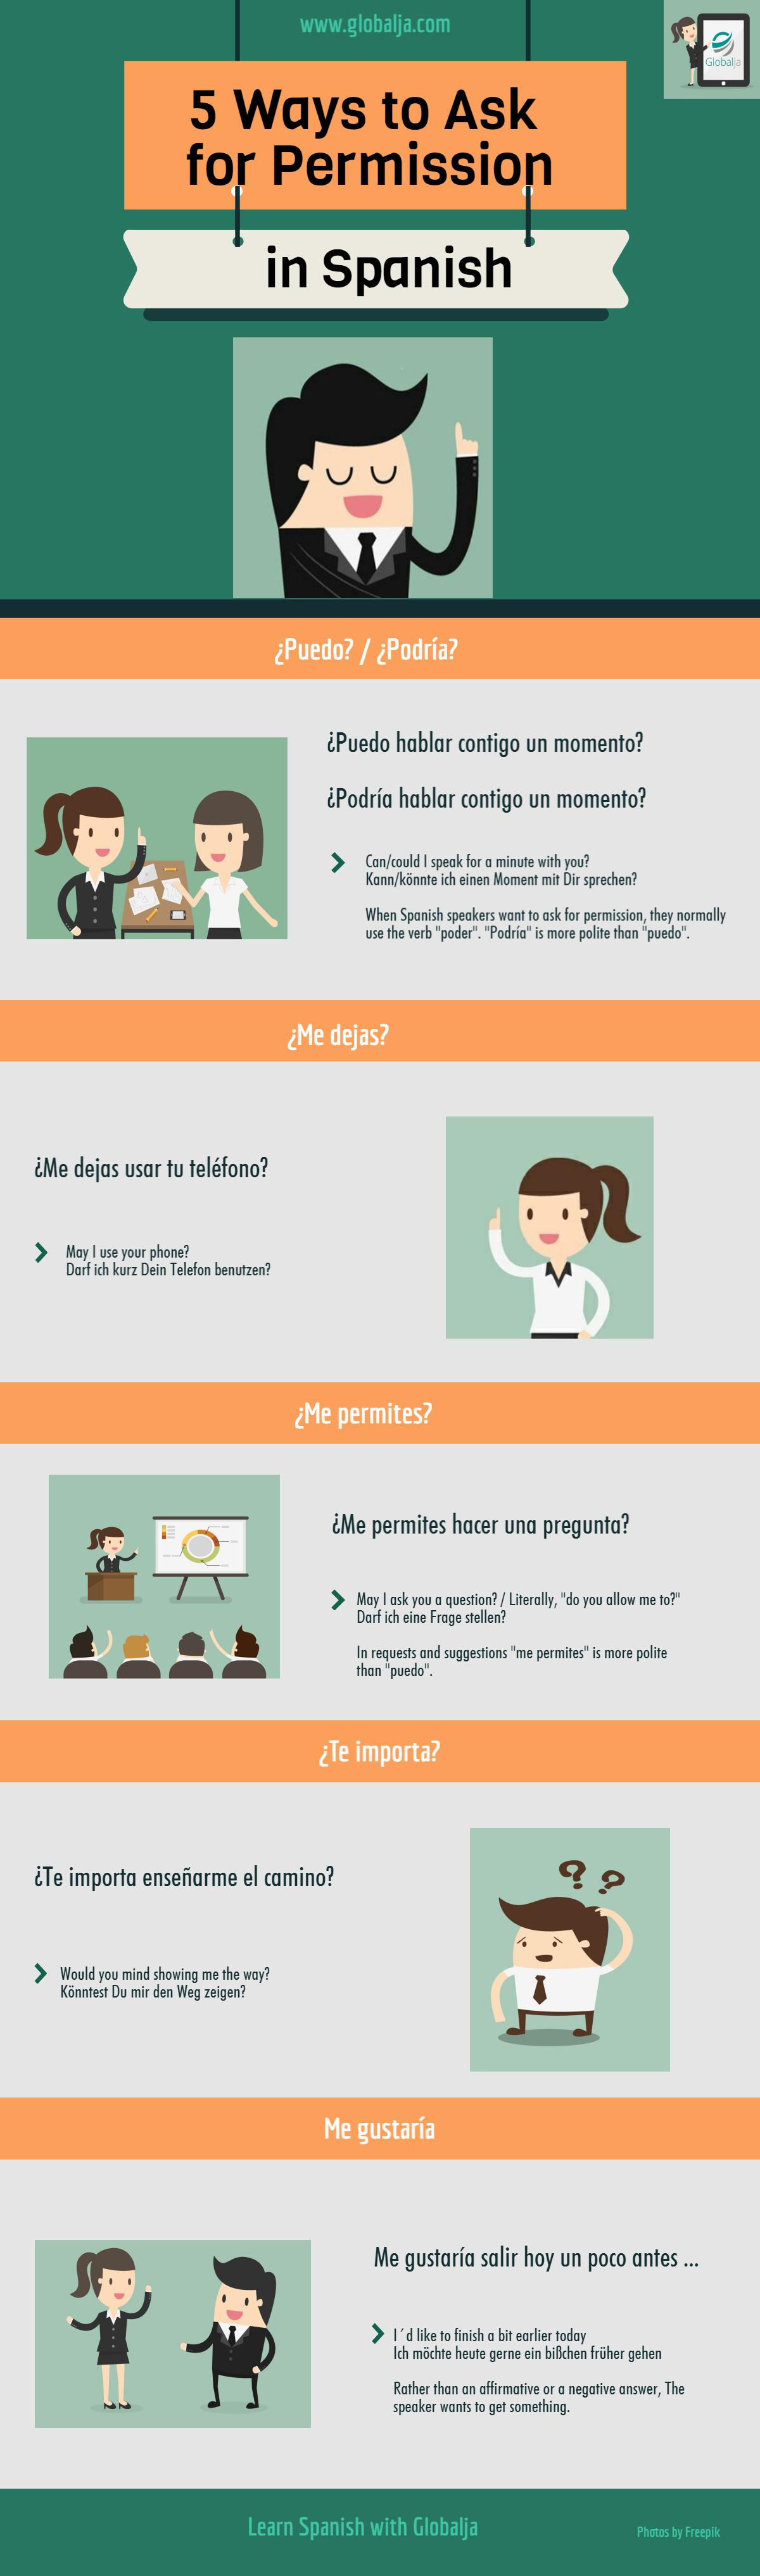 5 Ways to Ask for Permission in Spanish